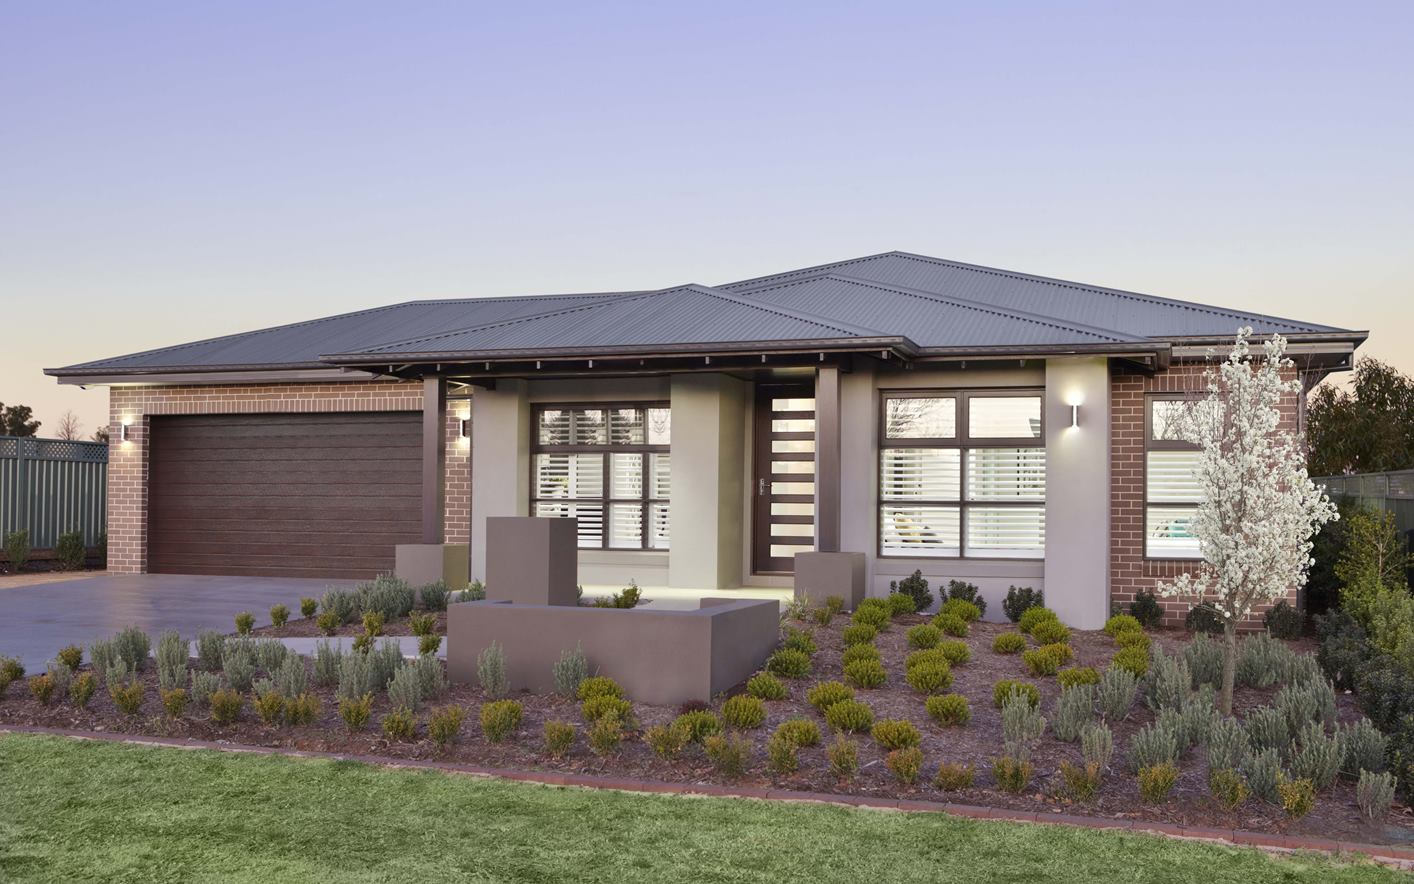 Metford Home Design with Majestic Facade